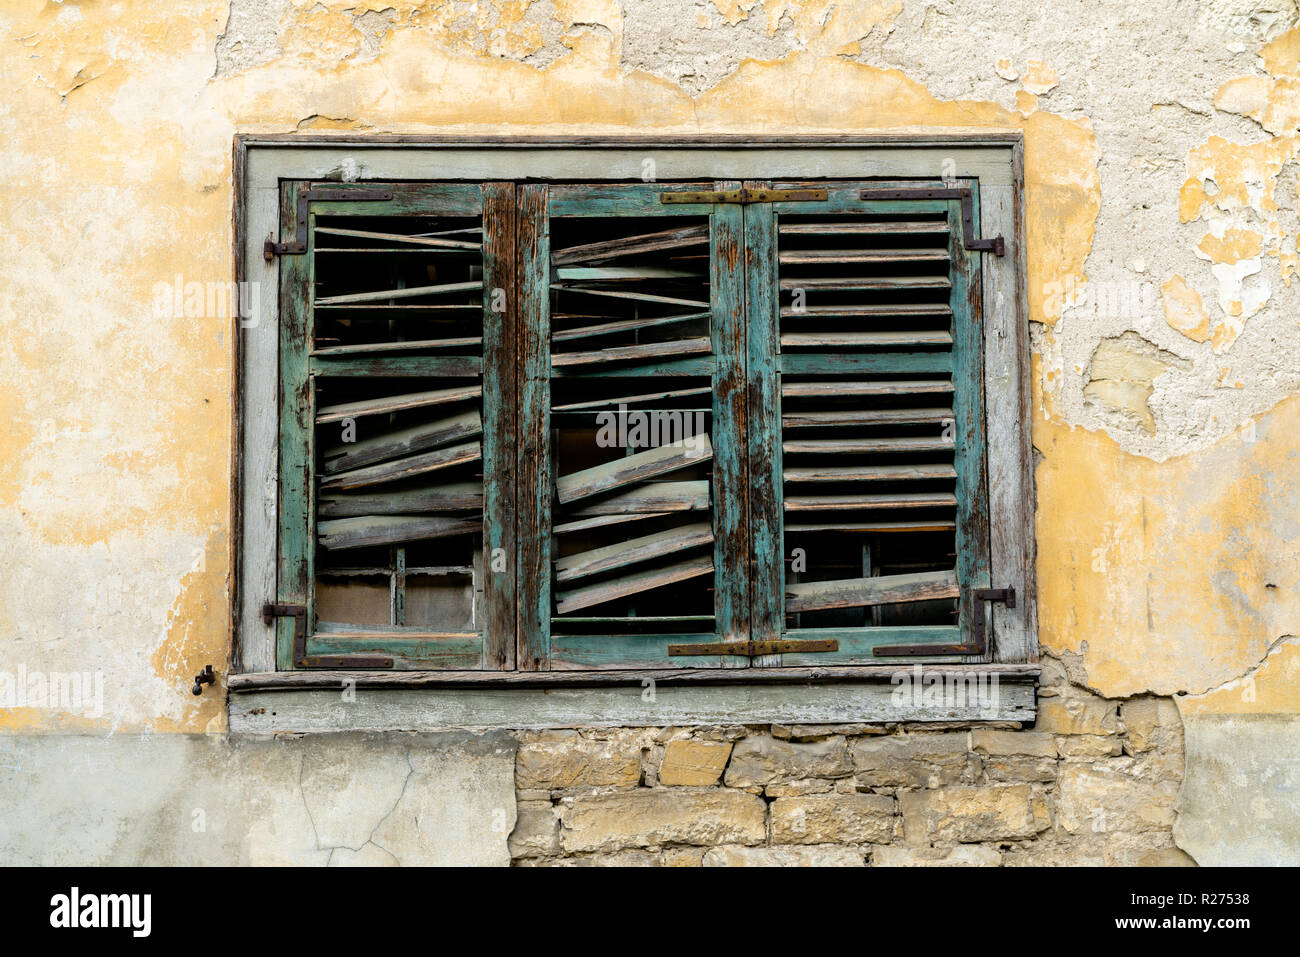 old broken window shutters on a dilapidated and run down house front with chipped paint and plaster - Stock Image